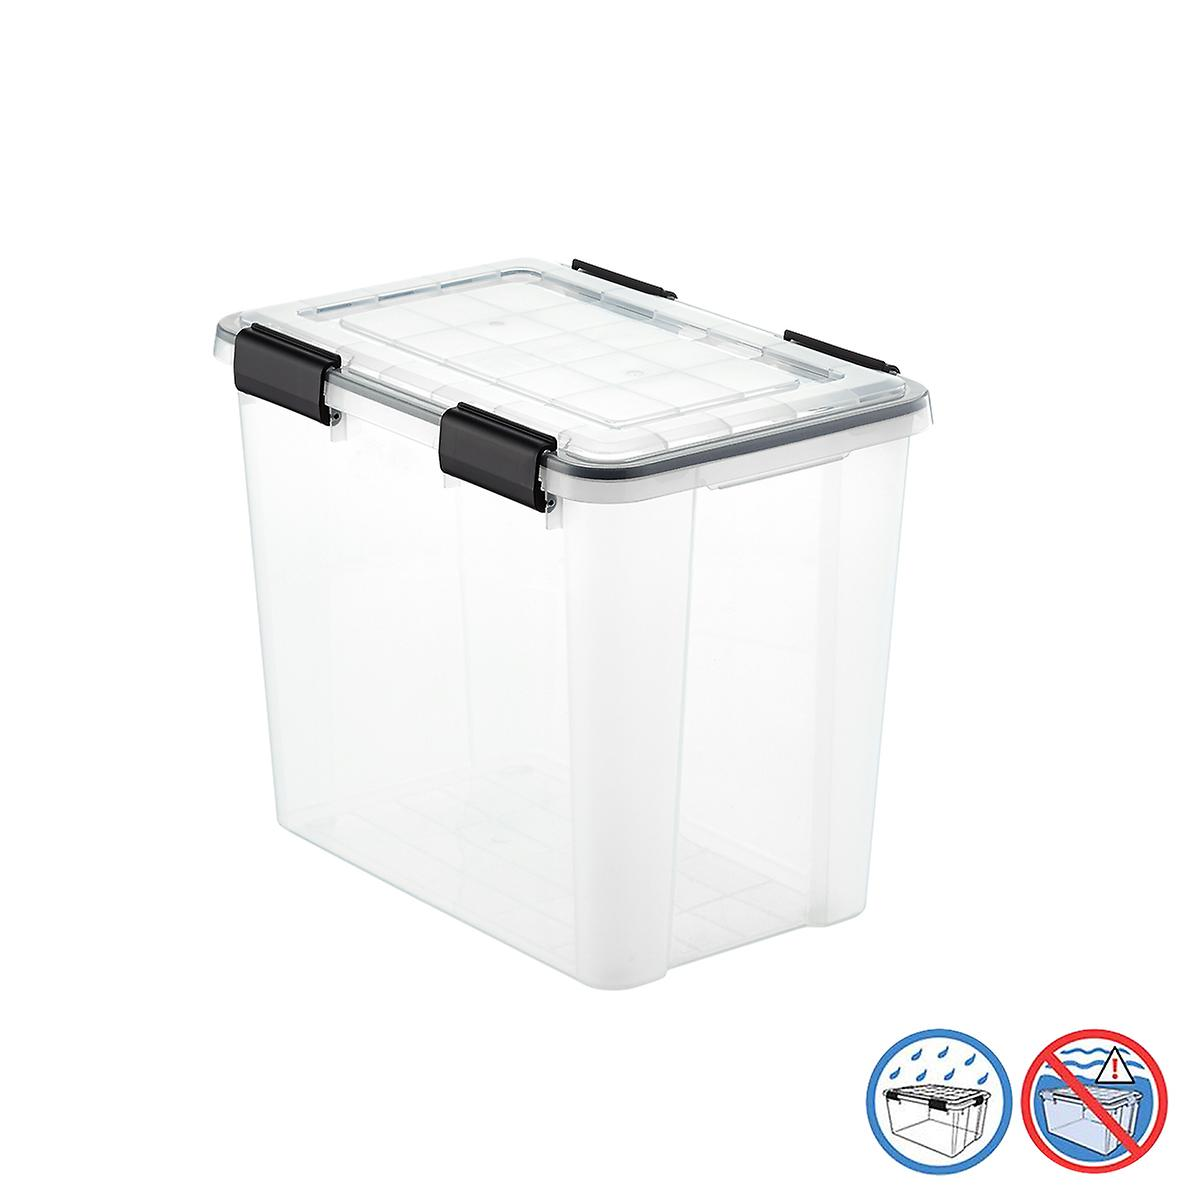 Storage Totes Large Plastic Bins Storage Containers The